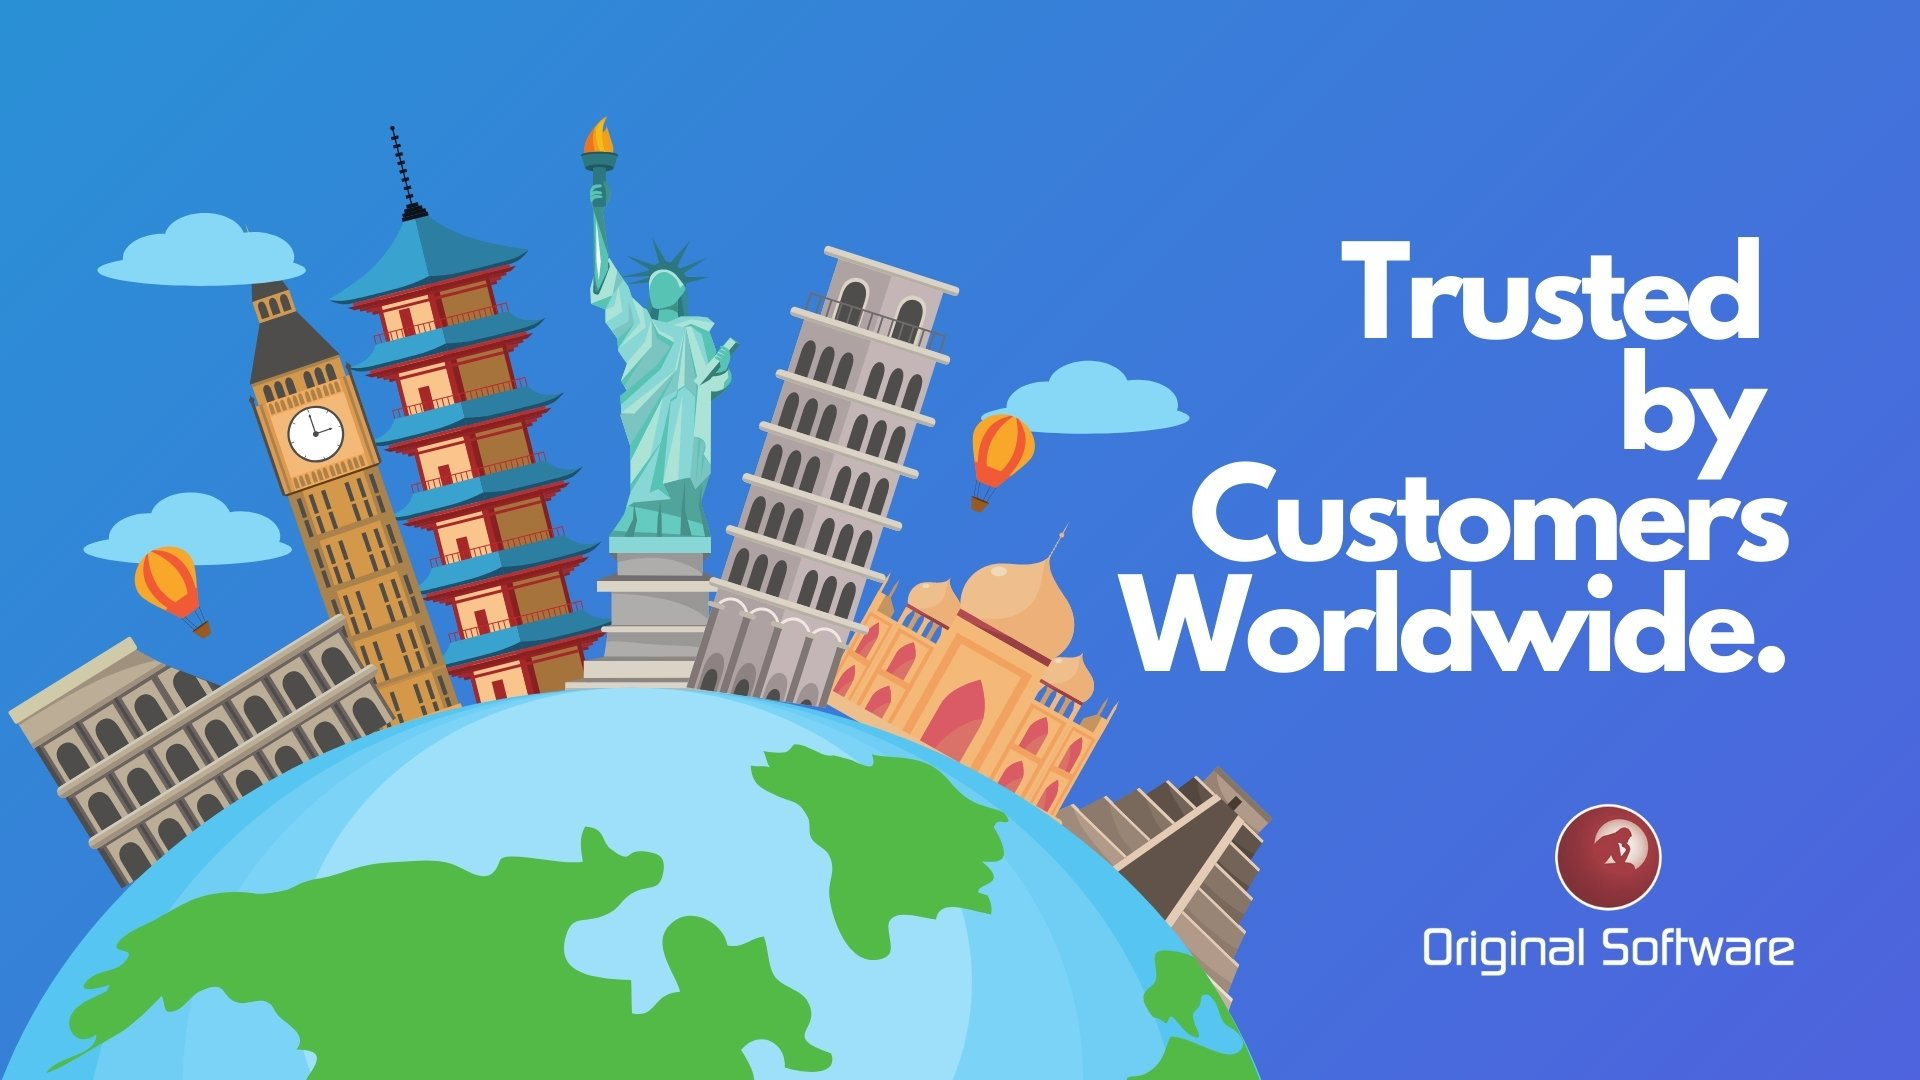 original-software-trusted-by-customers-worldwide-image